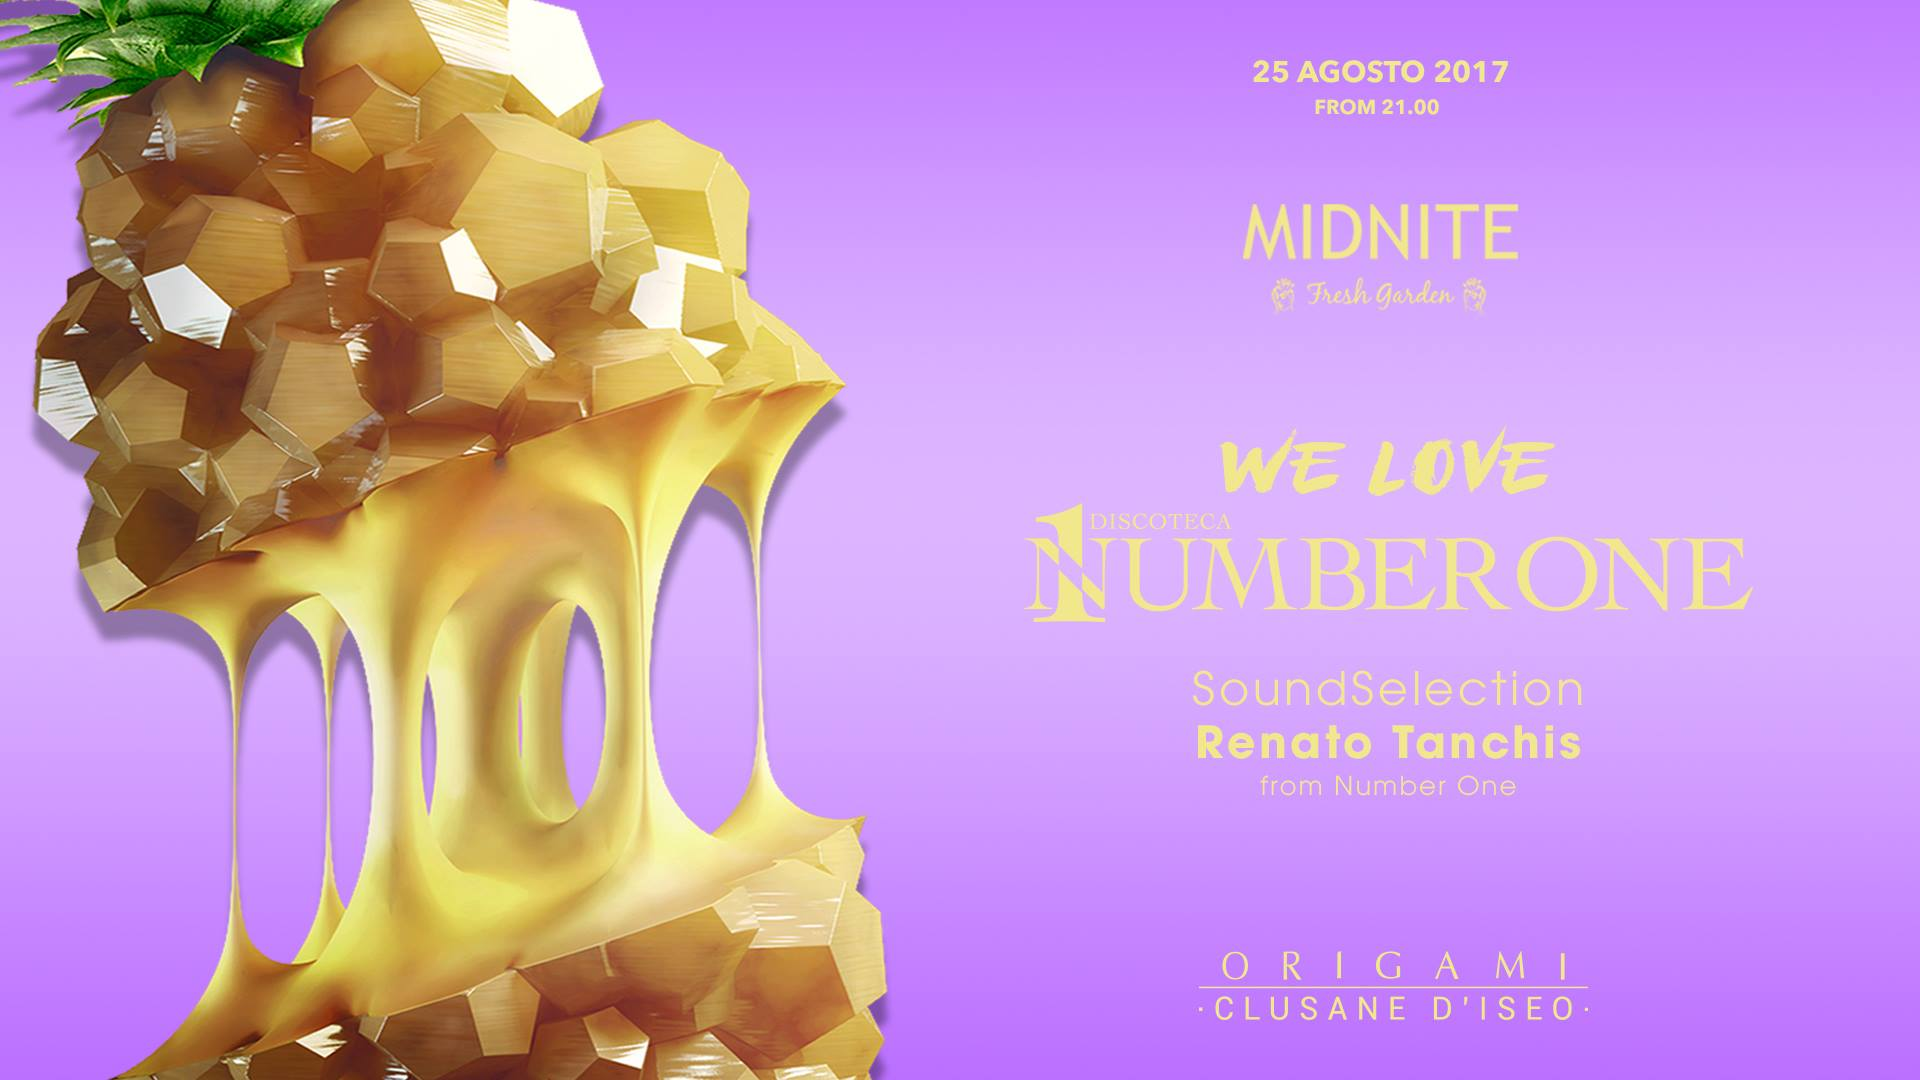 Midnite Fresh Garden / We Love Number One / Free Entry / Origami